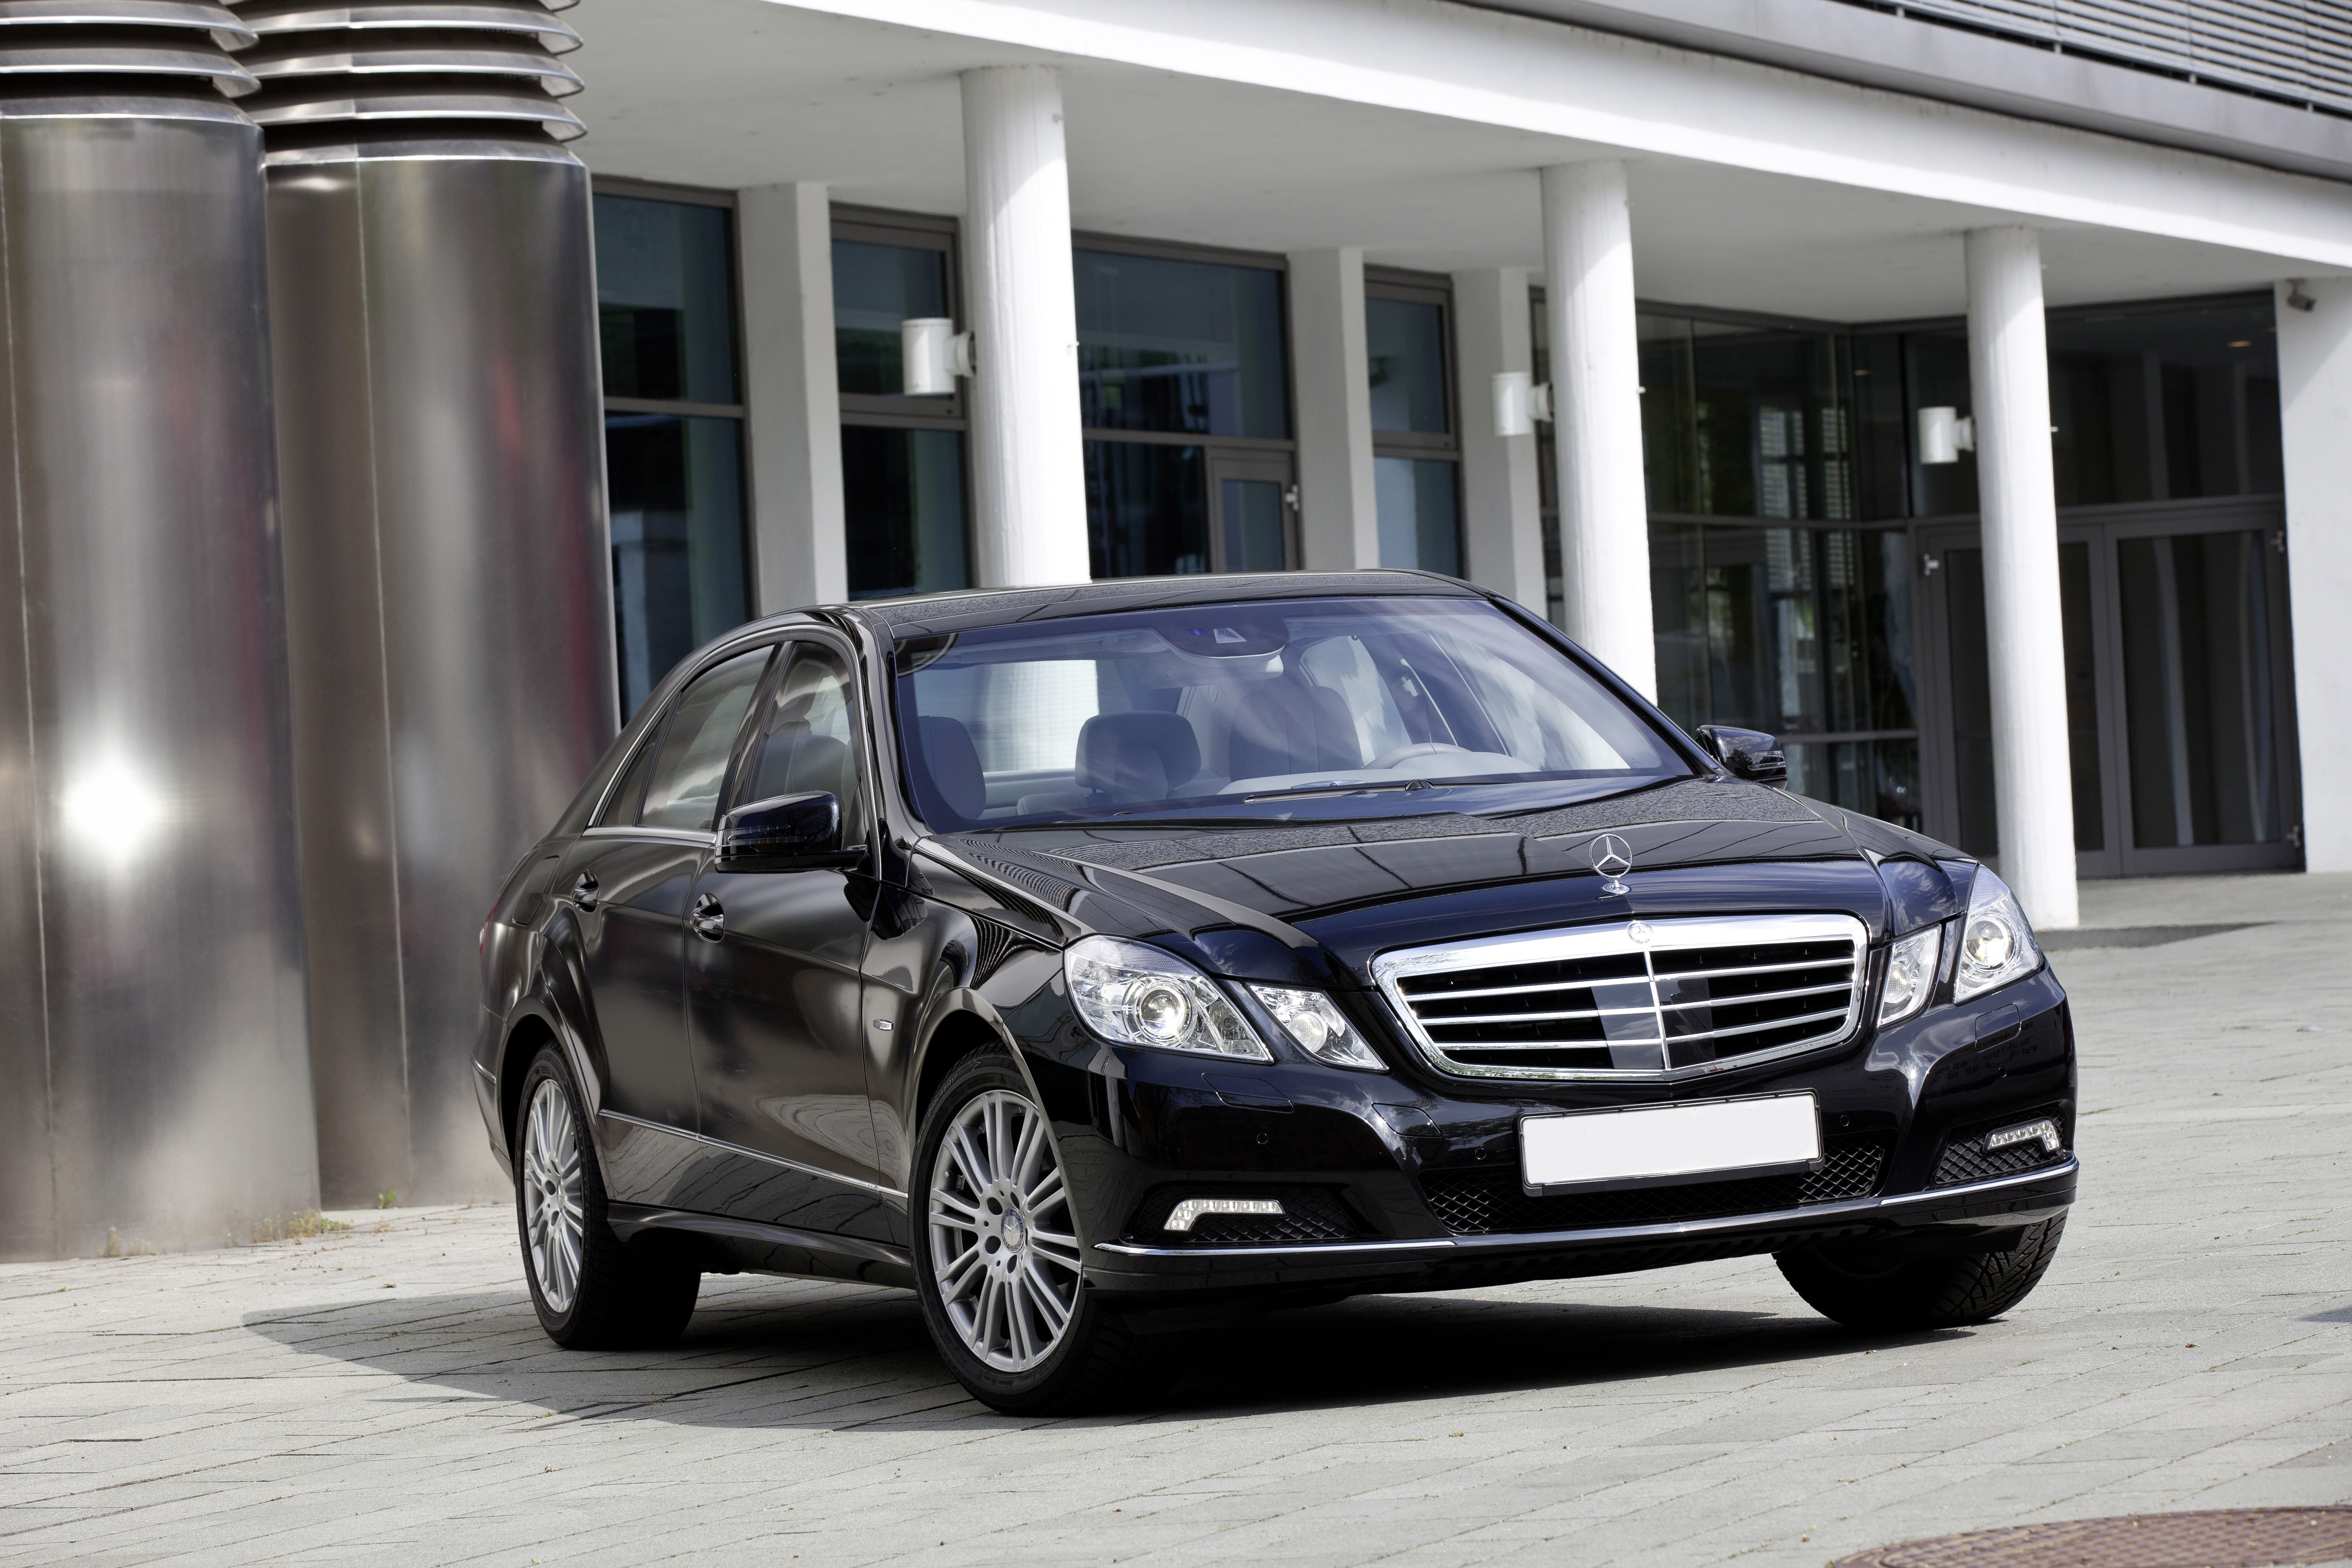 taxi in maidston, airport transfer in Maidstone, minicab in maidstone